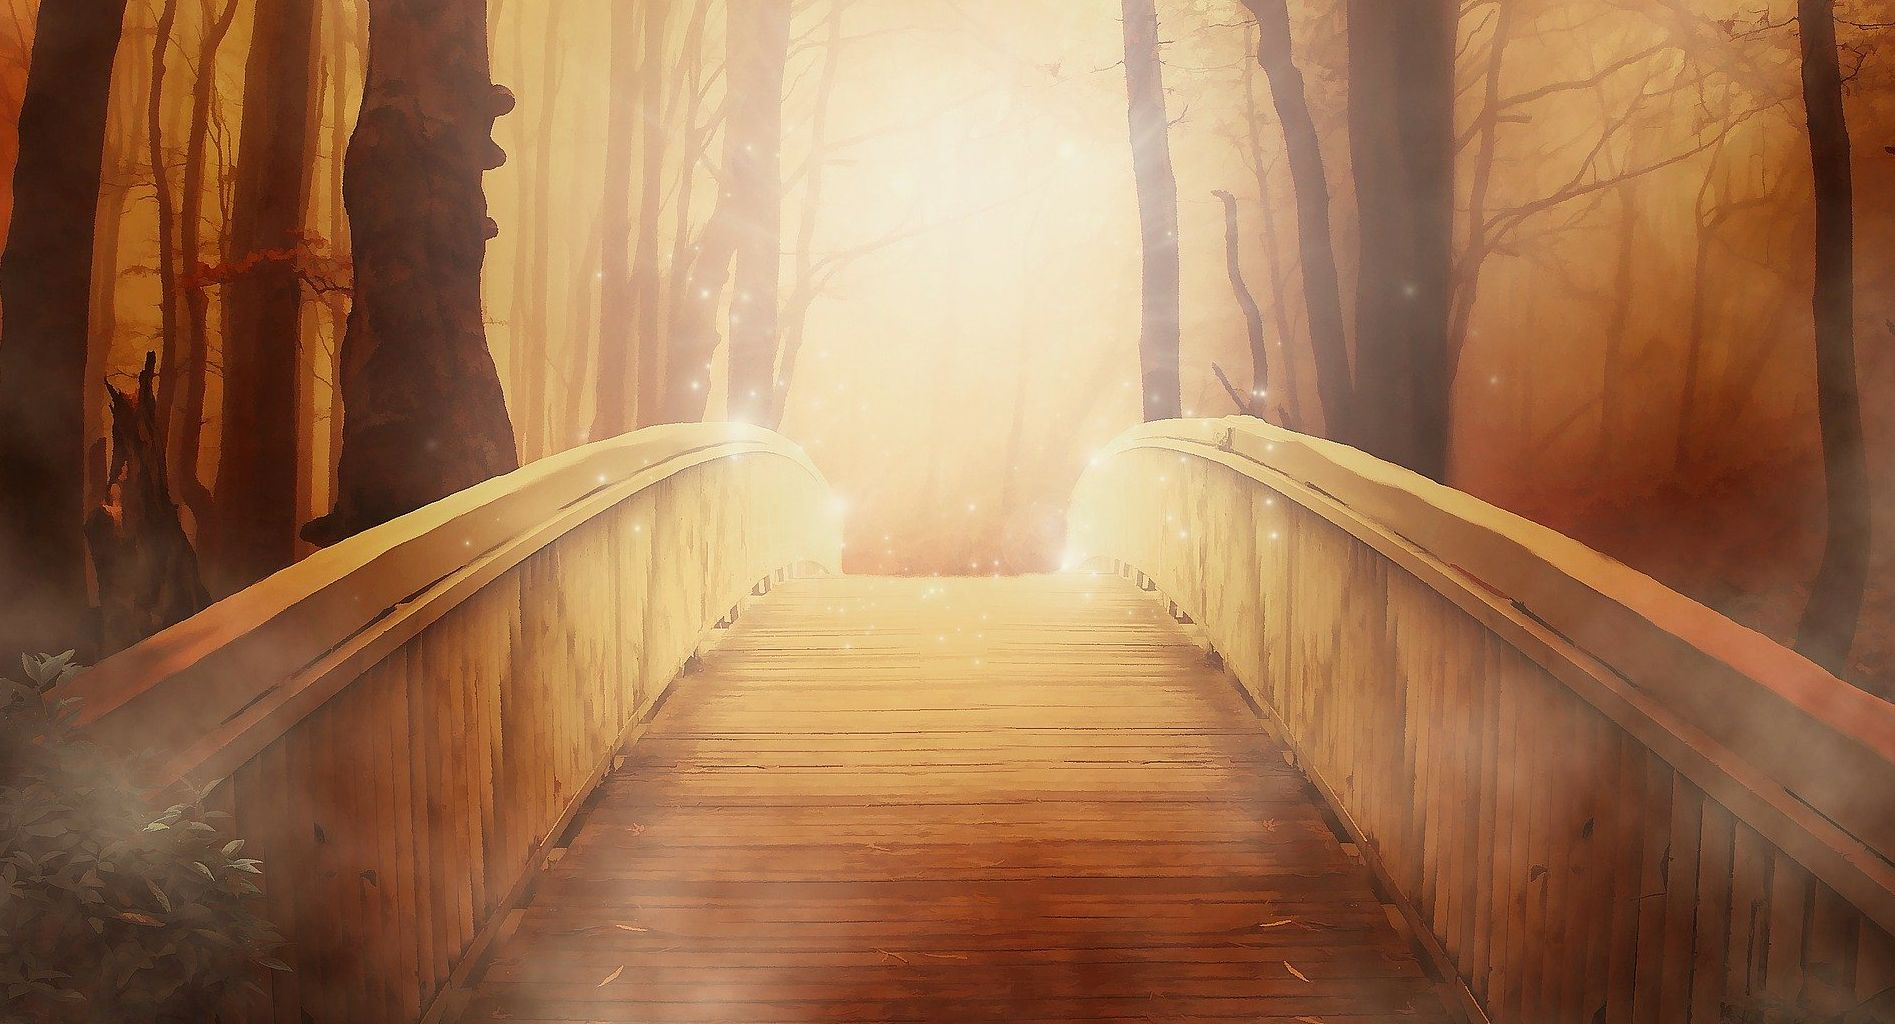 A wooden bridge illuminated at the end.